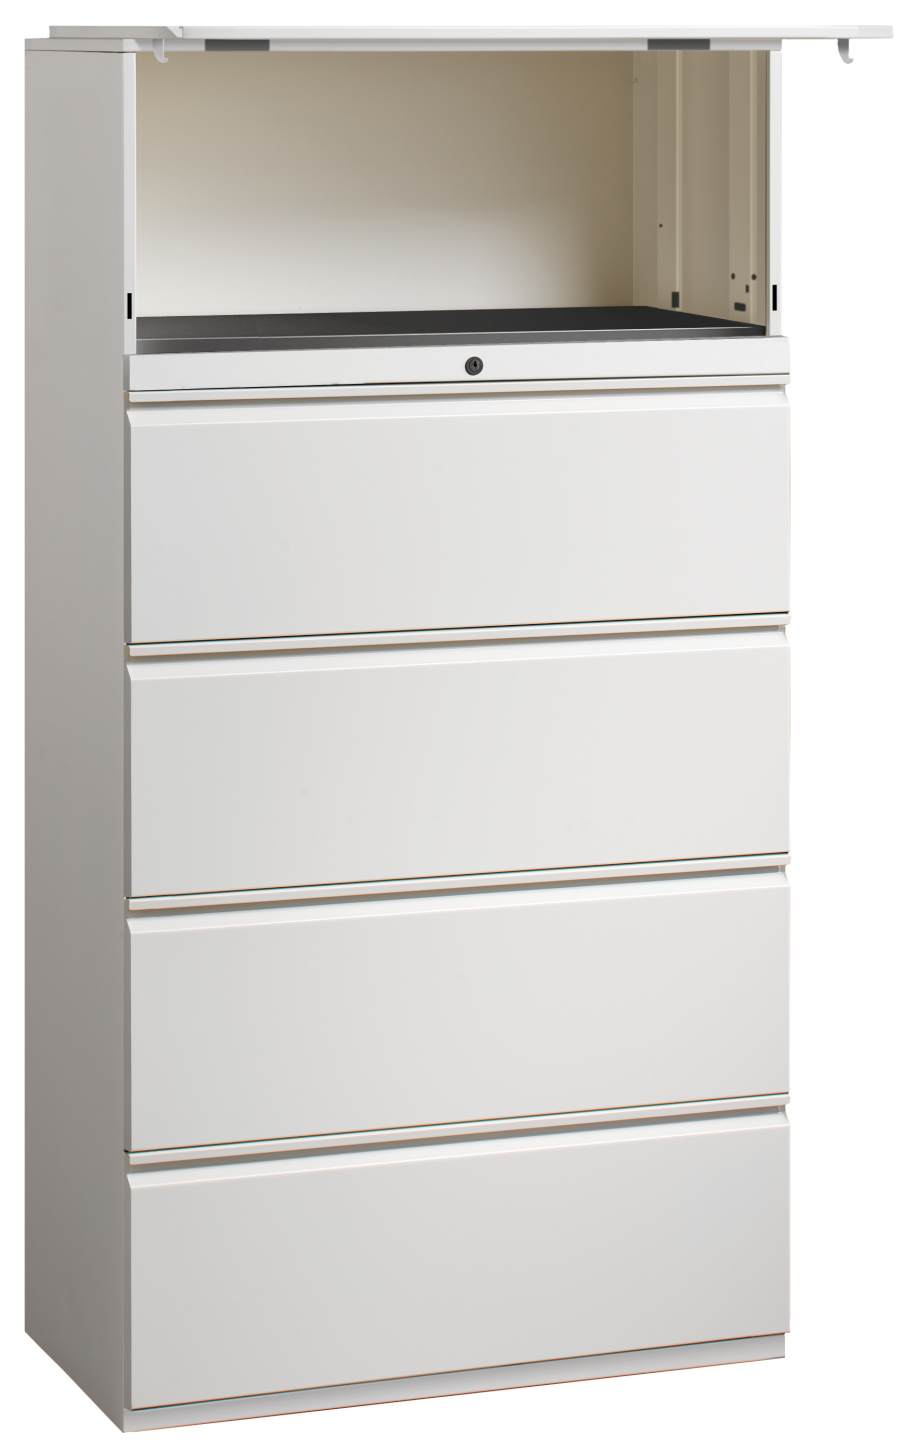 Charmant Trace Lateral File Cabinet With Hutch Modular File Cabinets